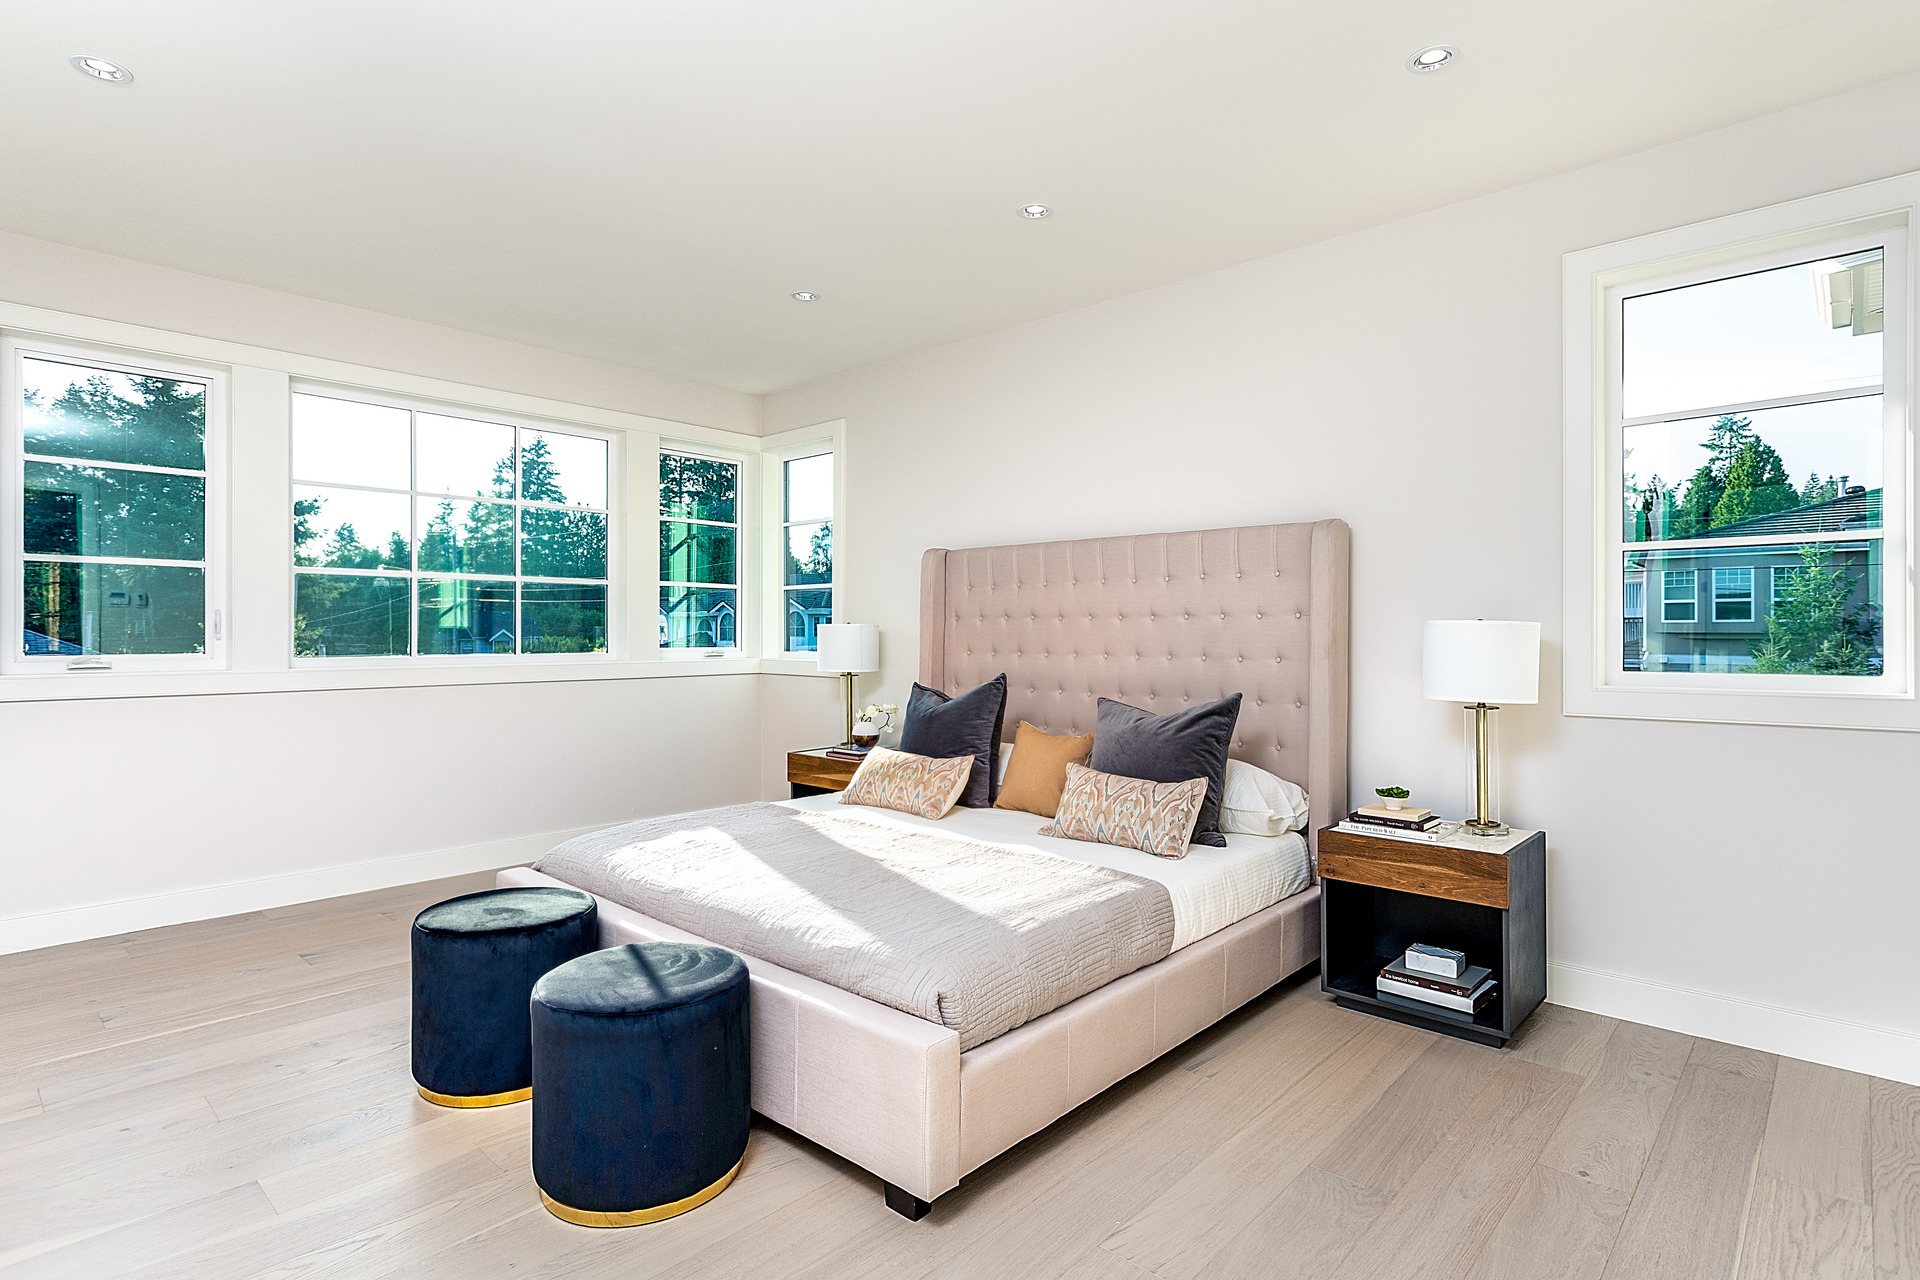 jh15 at 558 Berry Street, Central Coquitlam, Coquitlam